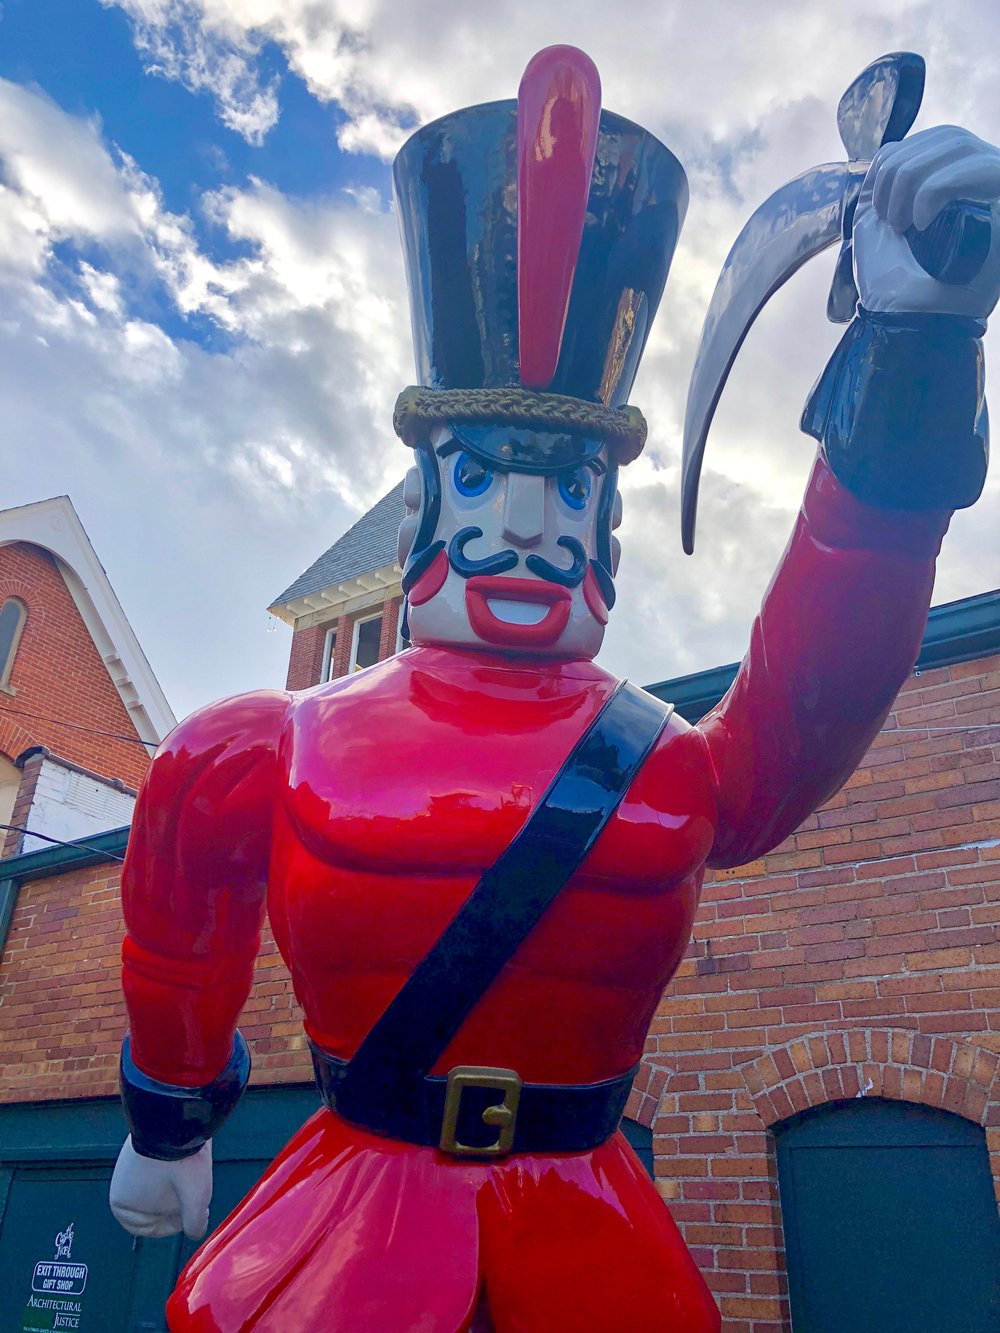 HUGE Nutcracker that was in the Cleveland Playhouse District.